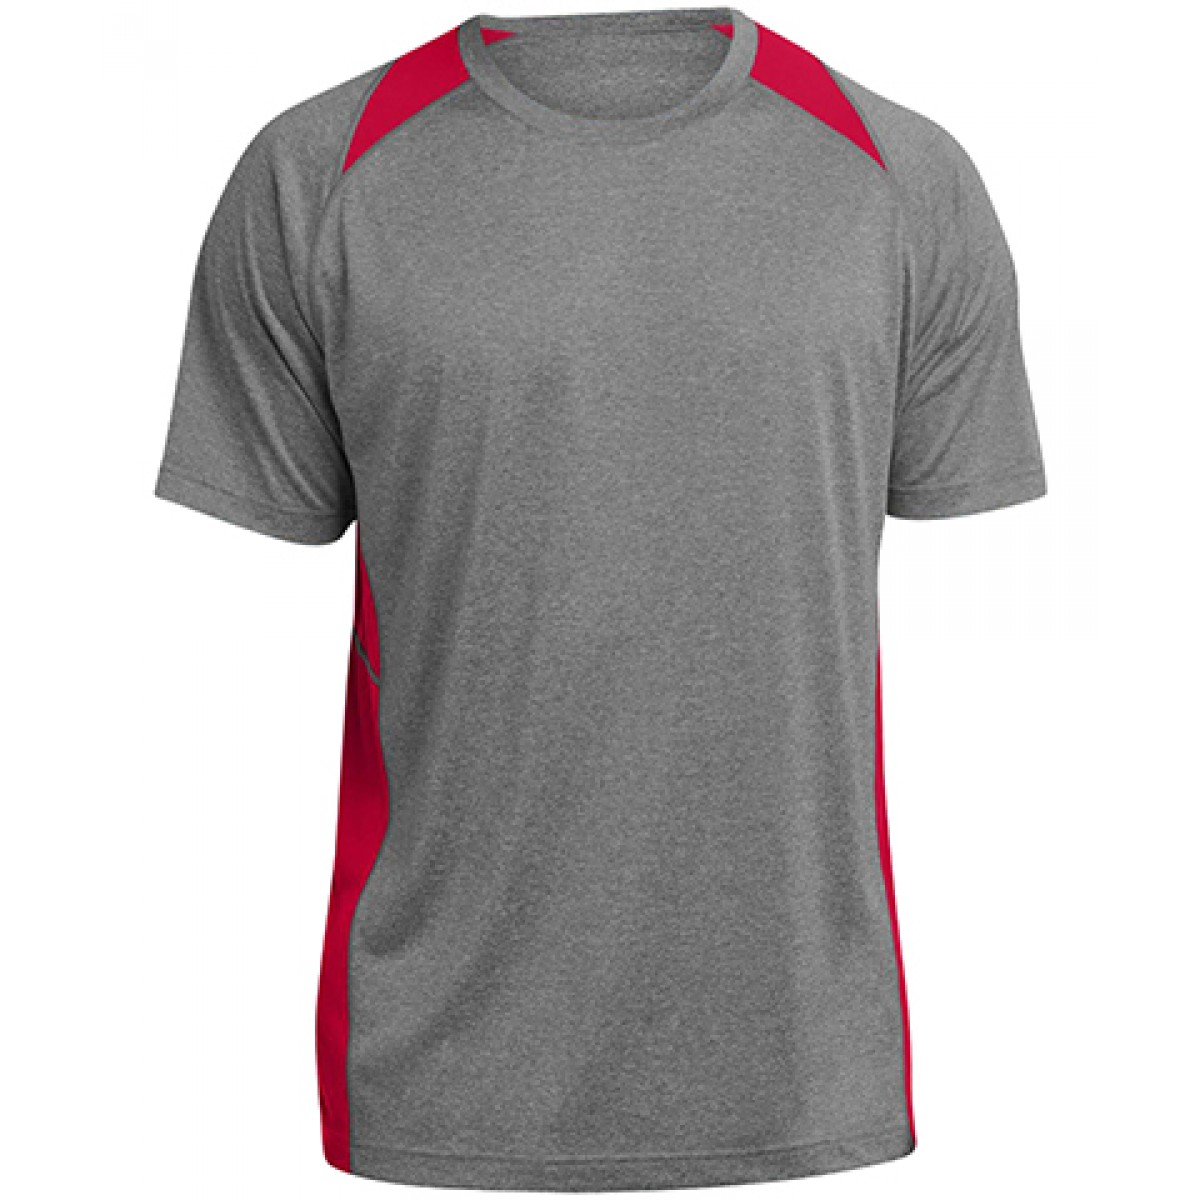 Heather Colorblock Contender™ Tee-Gray/Red-M